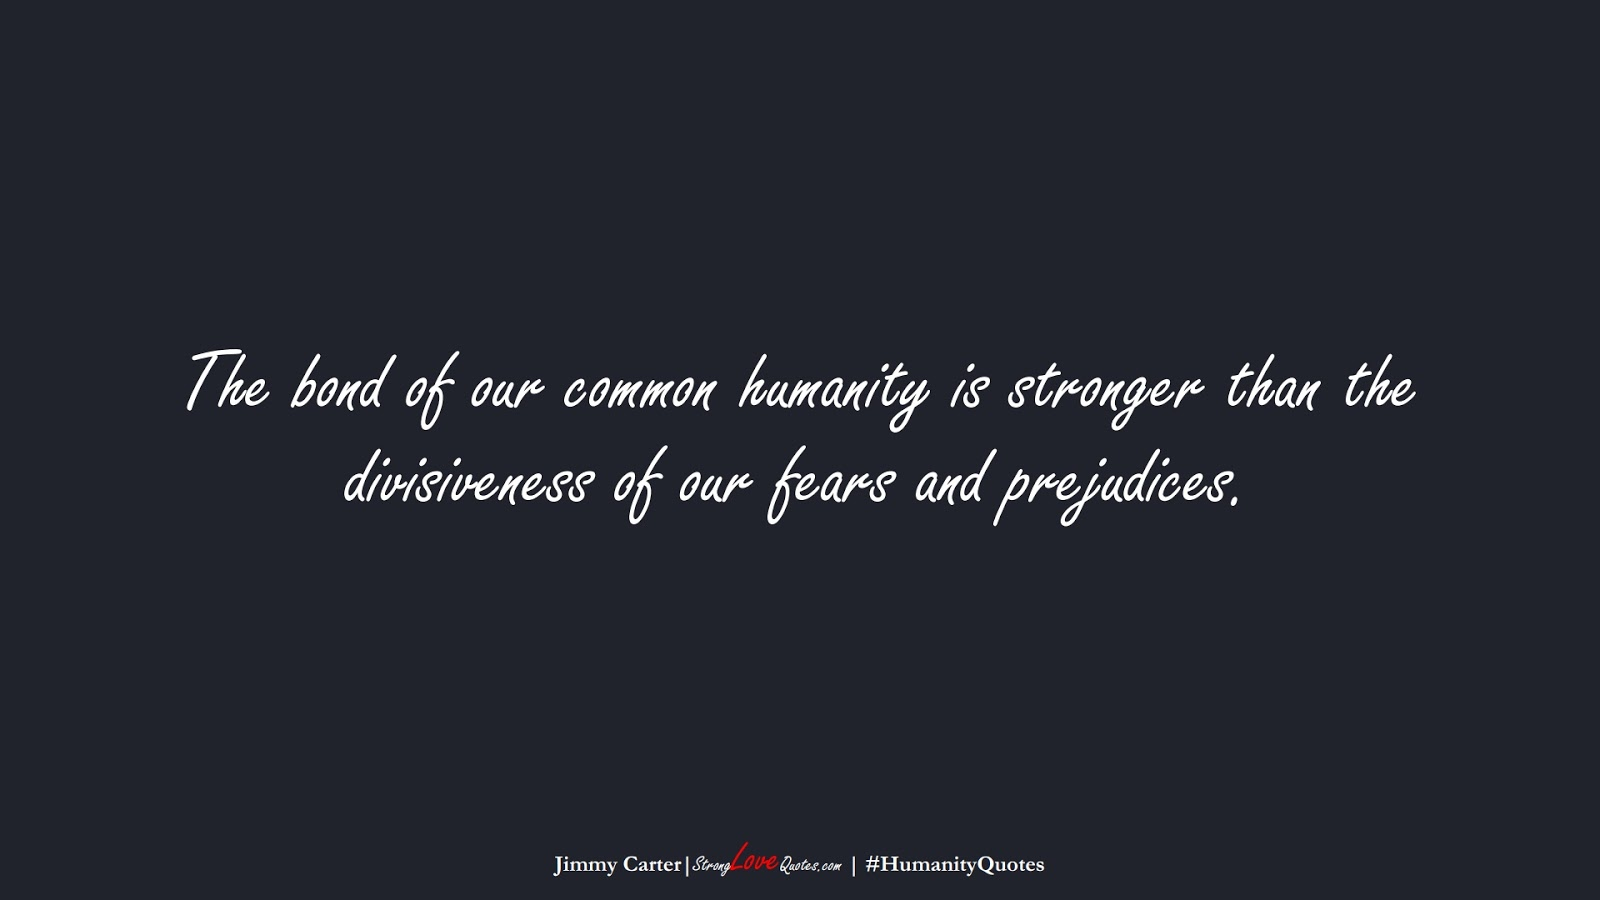 The bond of our common humanity is stronger than the divisiveness of our fears and prejudices. (Jimmy Carter);  #HumanityQuotes